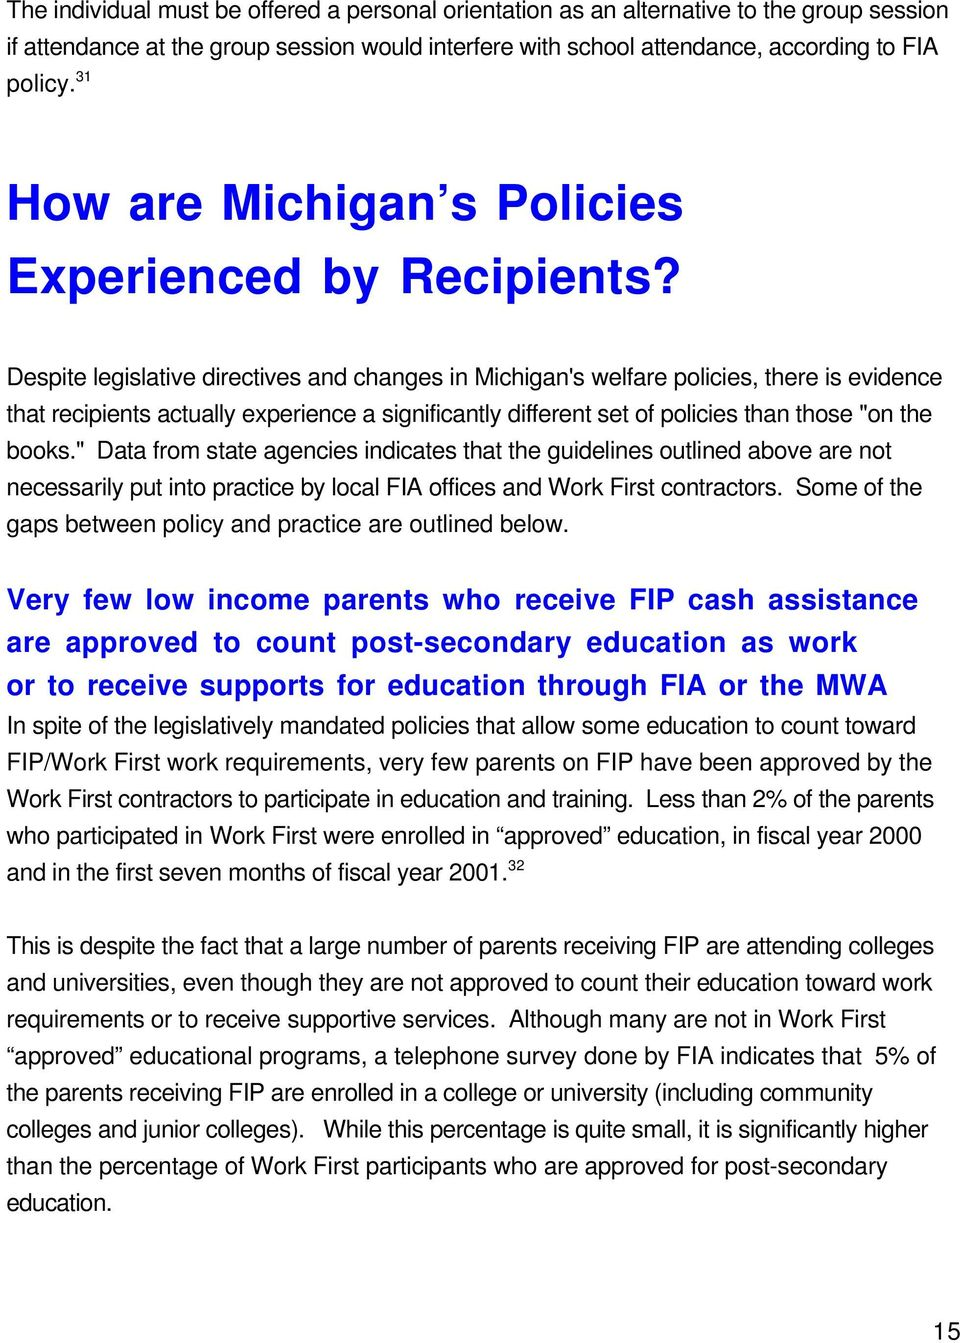 "Despite legislative directives and changes in Michigan's welfare policies, there is evidence that recipients actually experience a significantly different set of policies than those ""on the books."